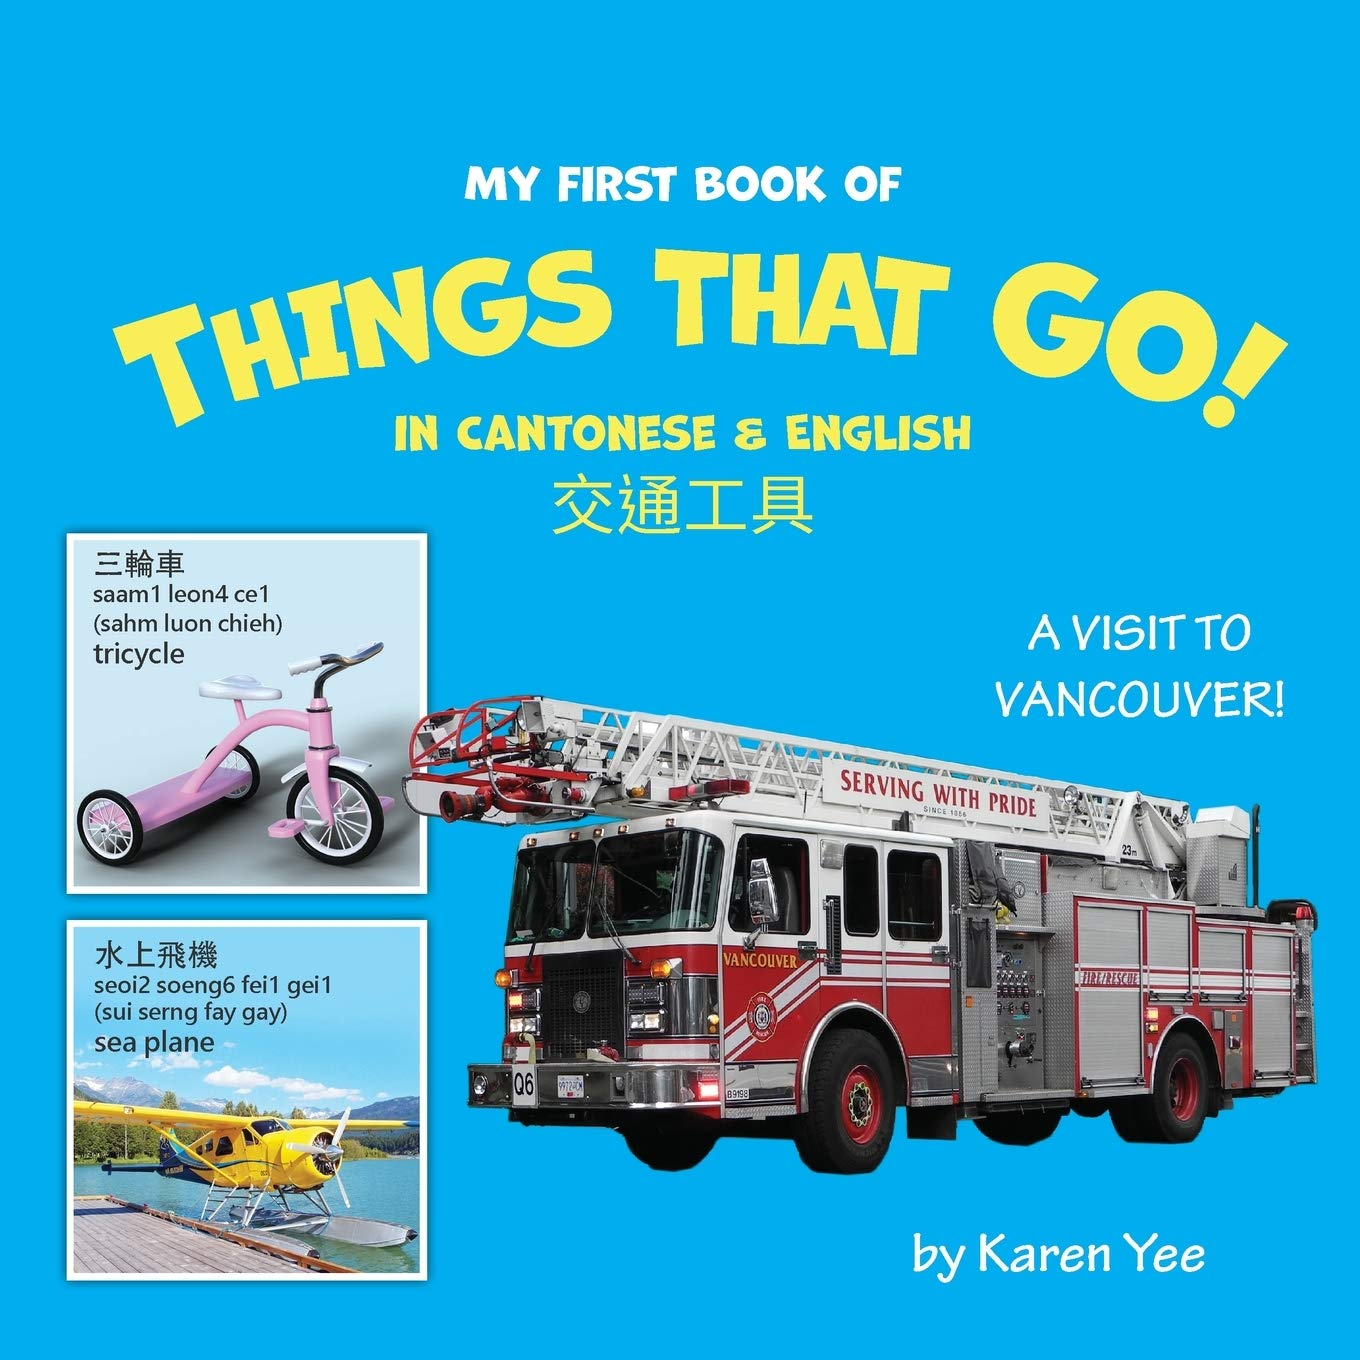 My First Book of Things That Go!